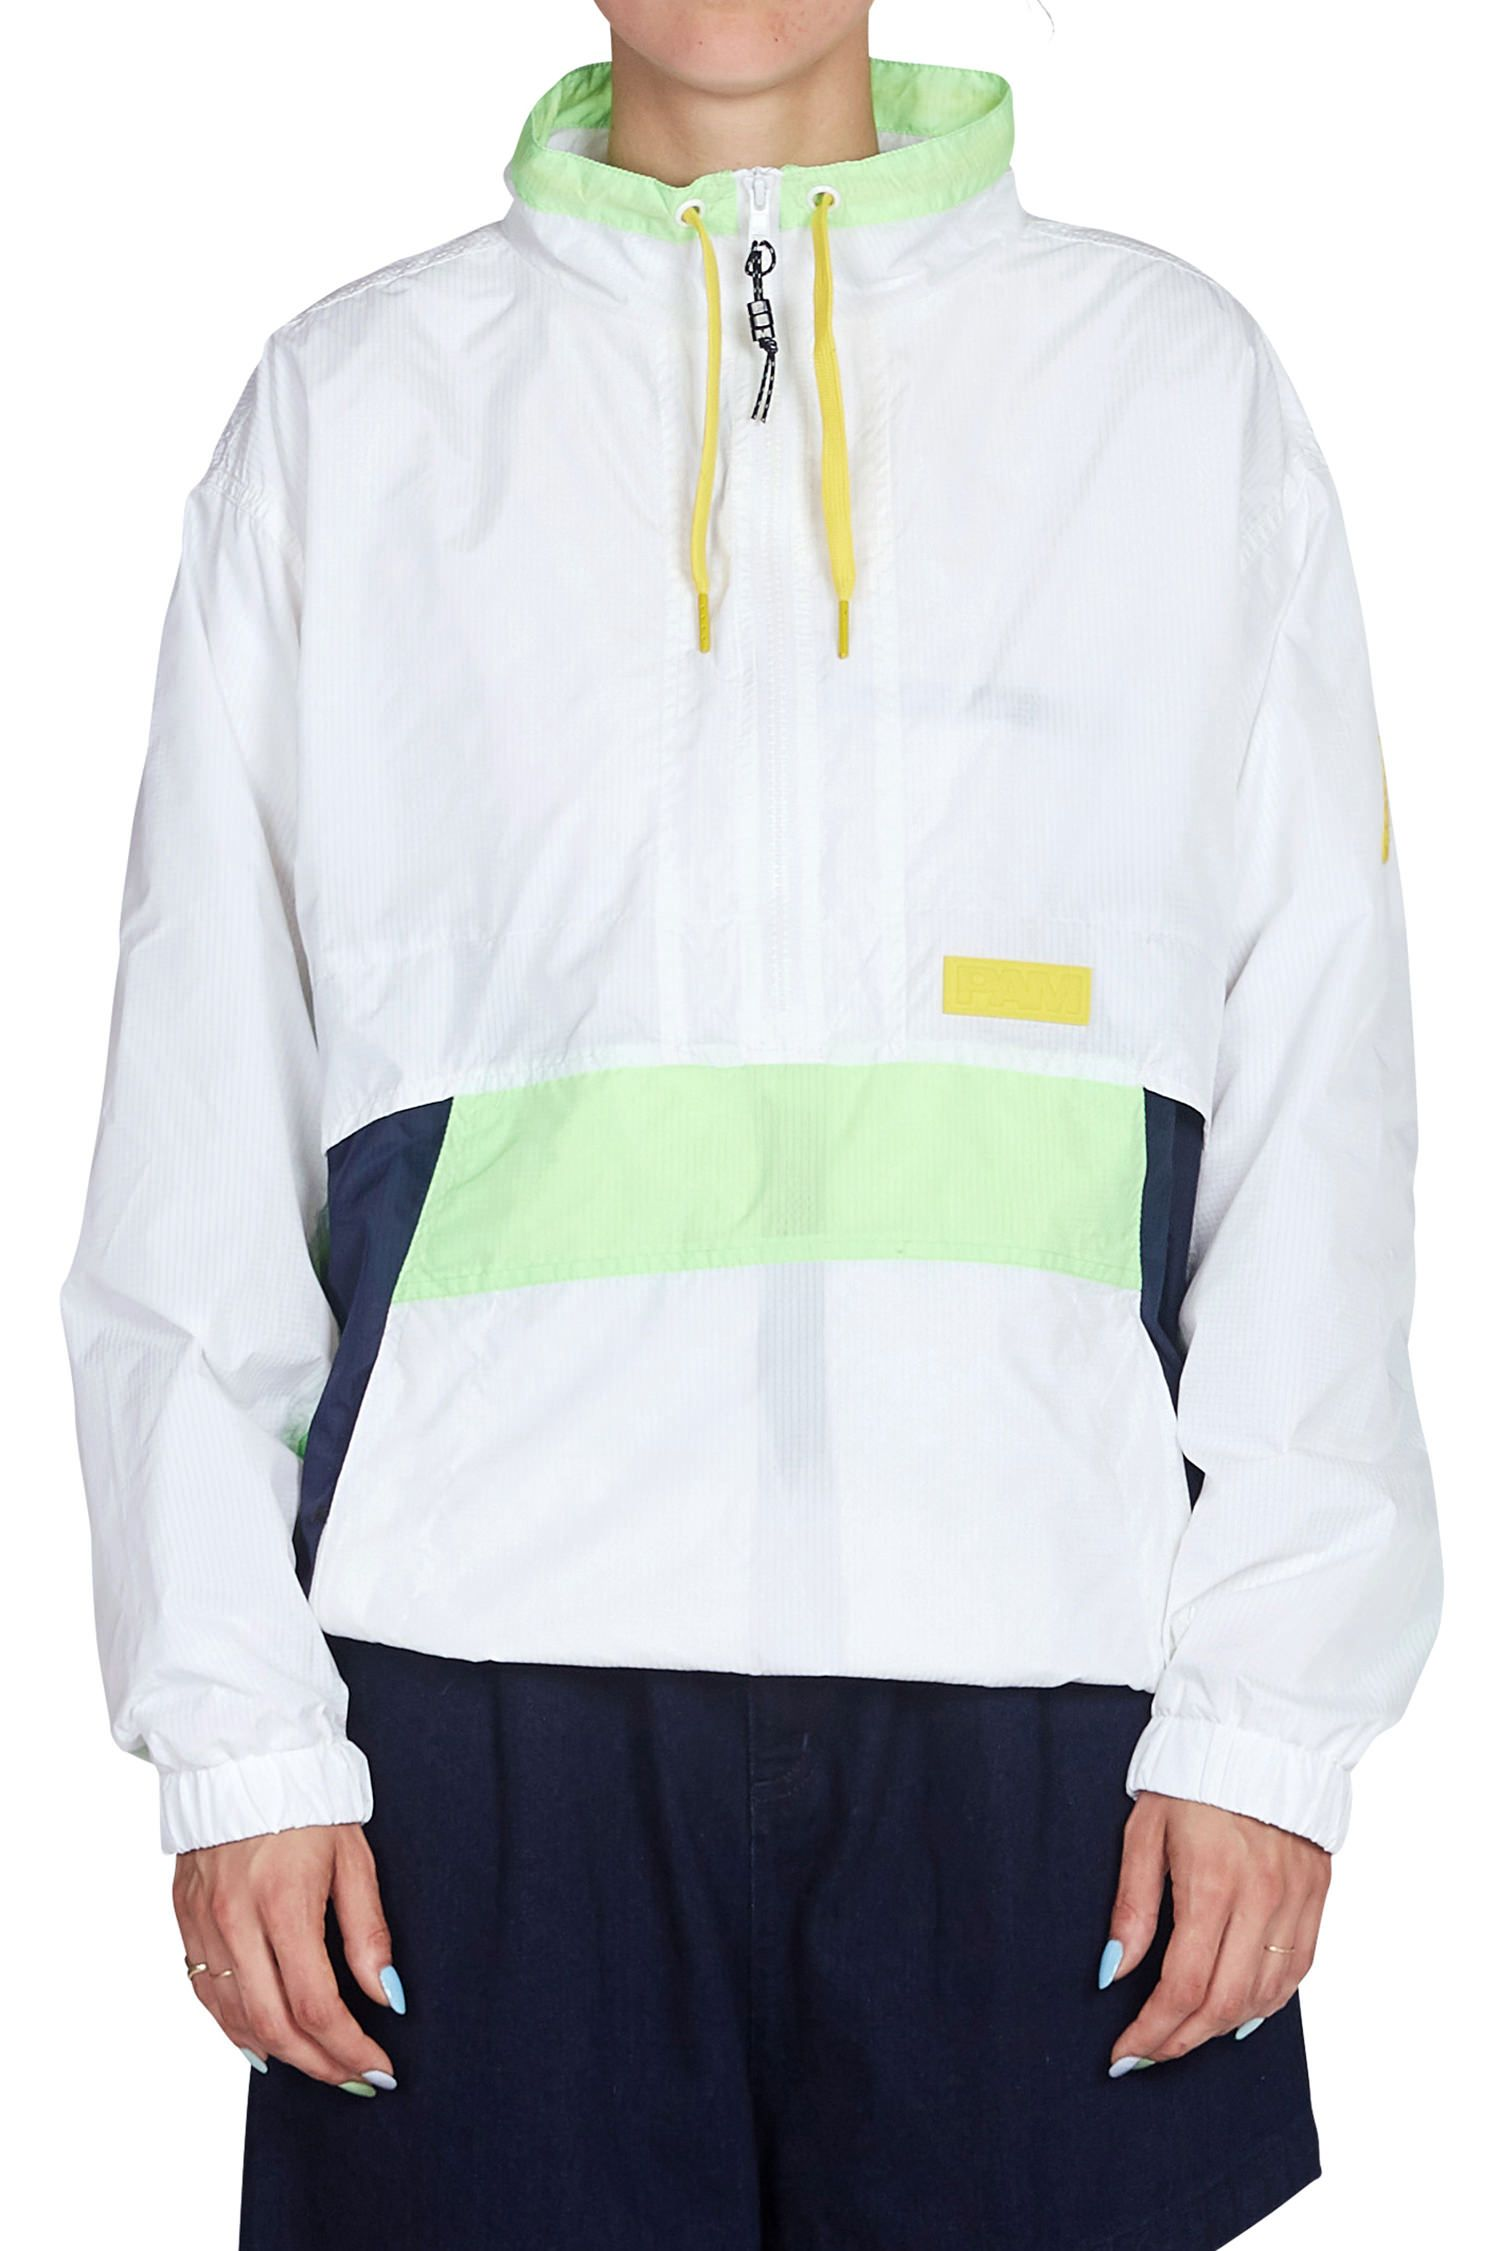 39076_TIME_FOLDS_TRACK_PULLOVER_-_white_navy_green_-_2